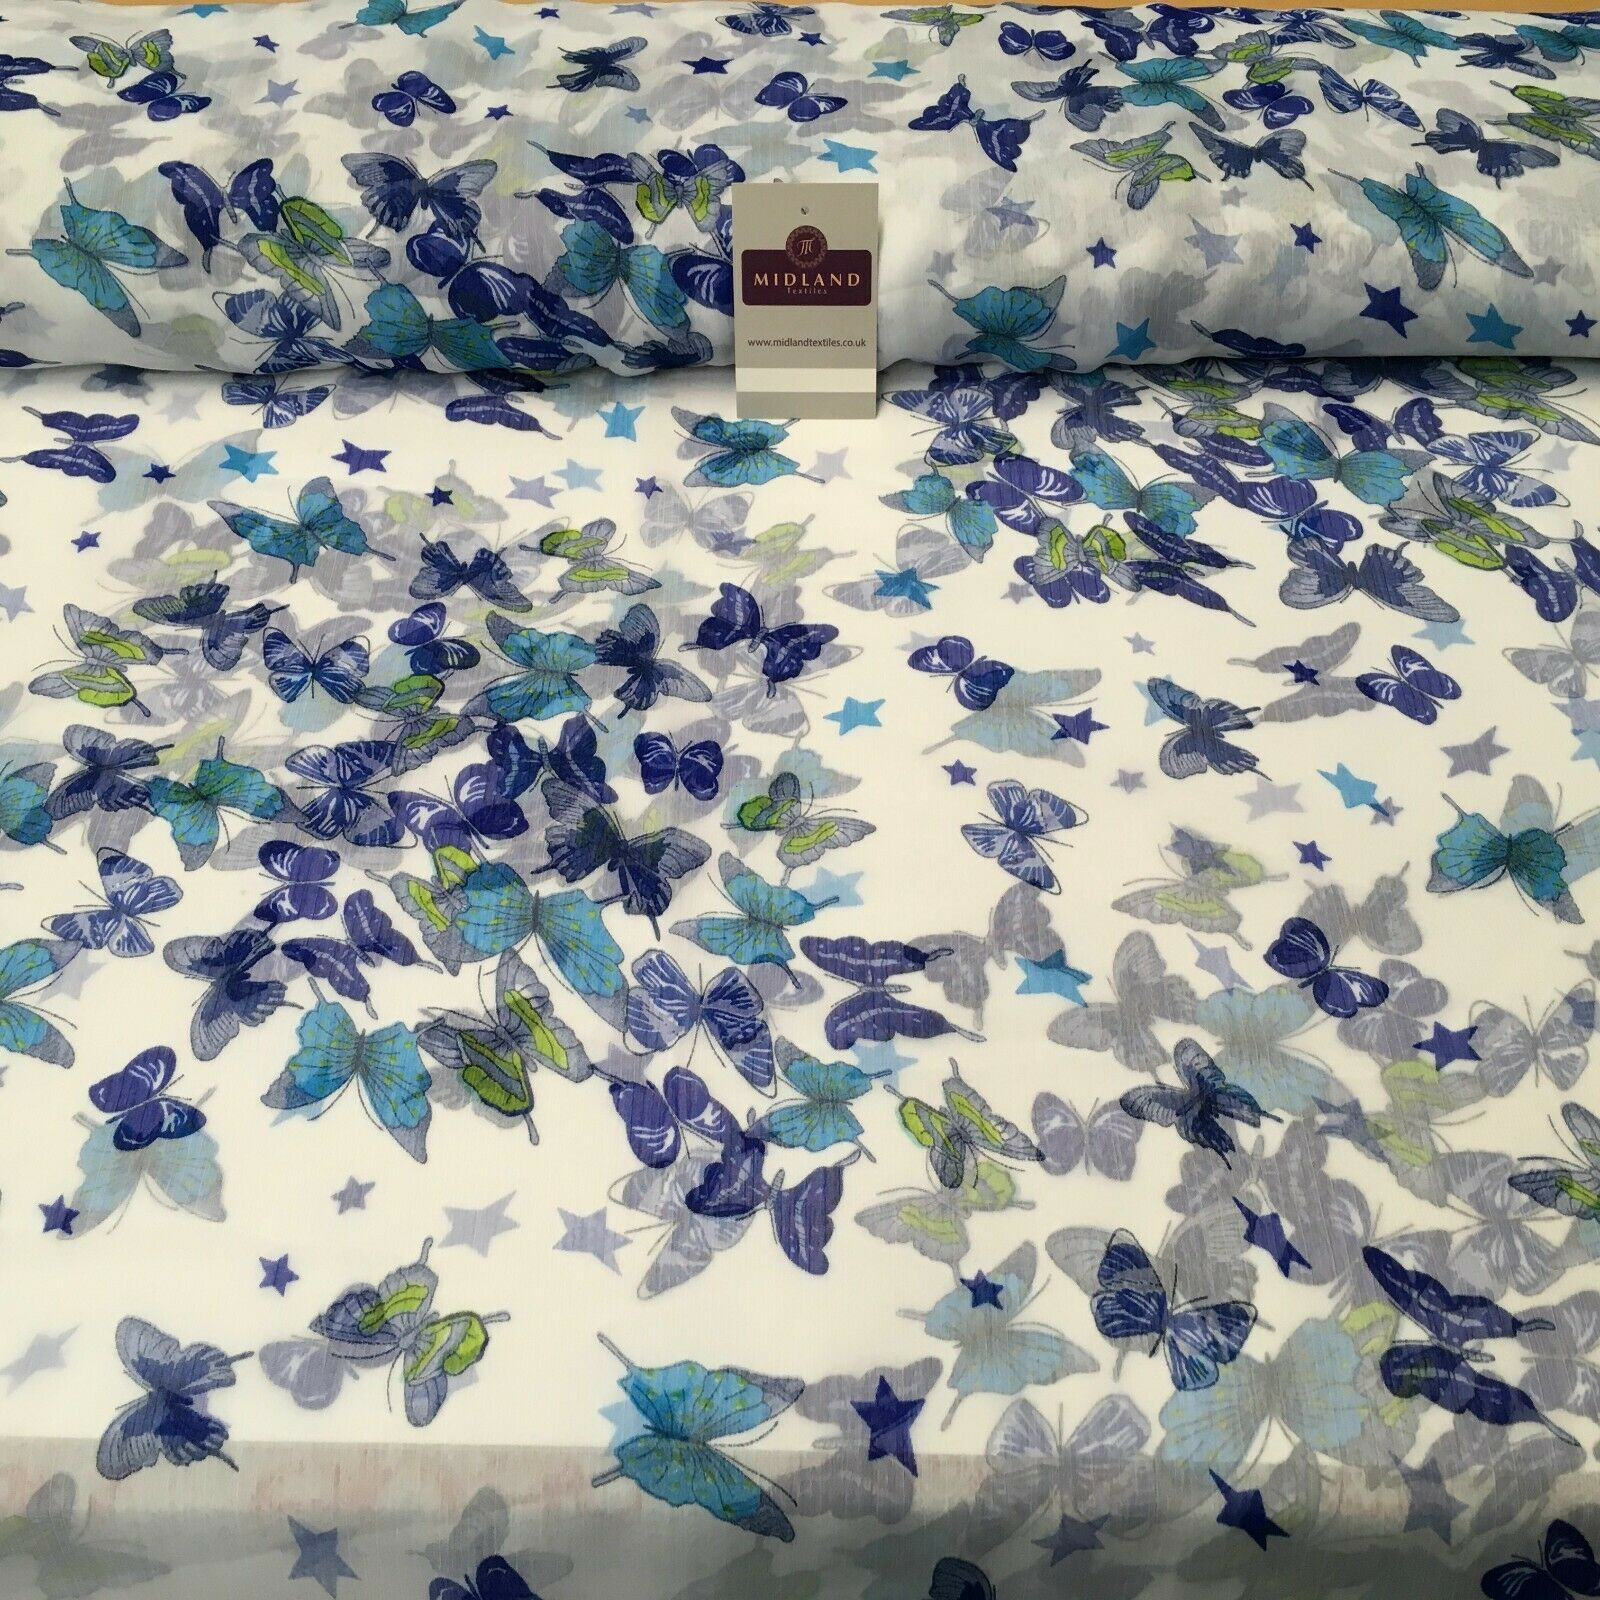 Blue and White Crinkle Georgette Chiffon Fabric 150cm Wide MK1090-9